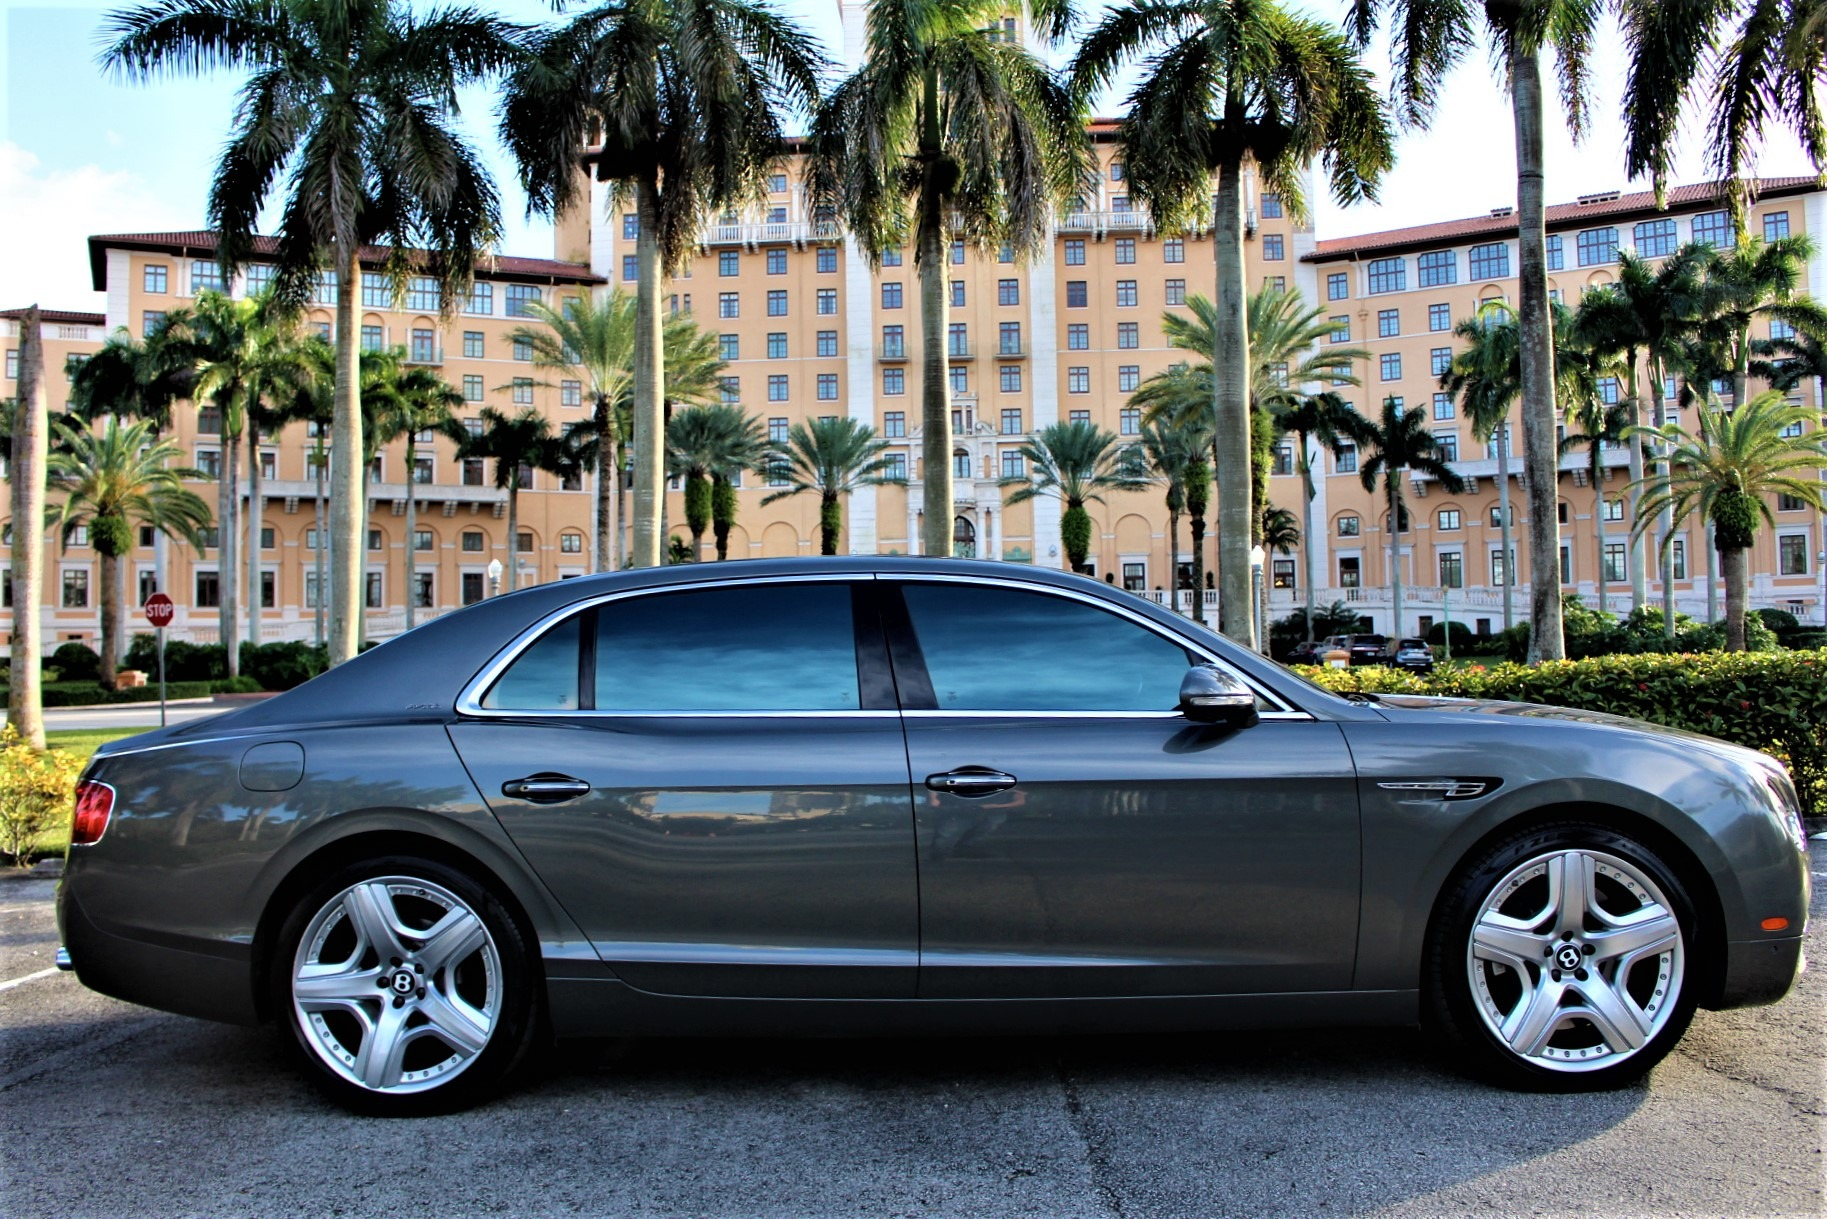 Used 2014 Bentley Flying Spur for sale Sold at The Gables Sports Cars in Miami FL 33146 1